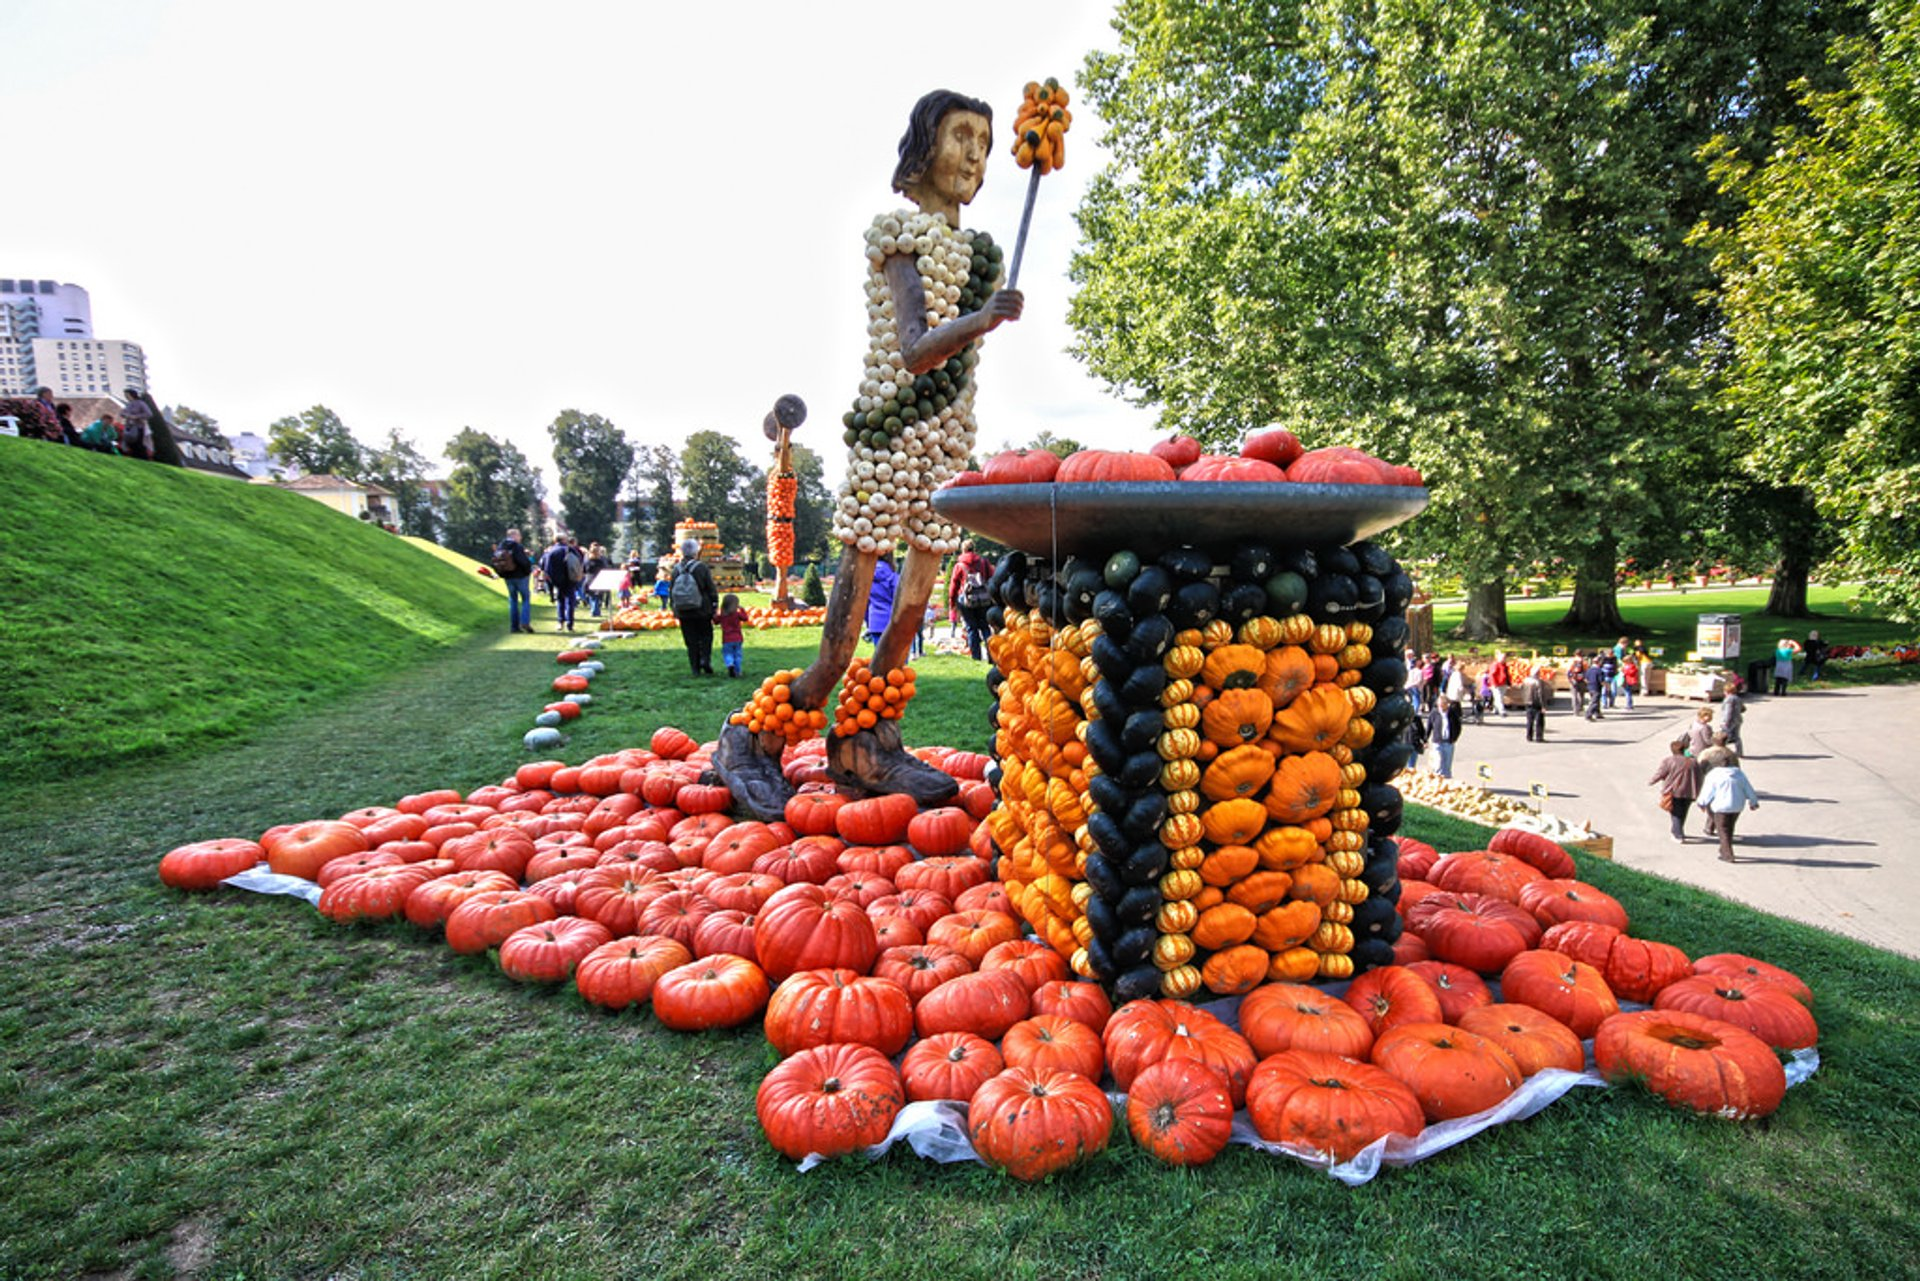 Best time for Ludwigsburg Pumpkin Festival in Germany 2020